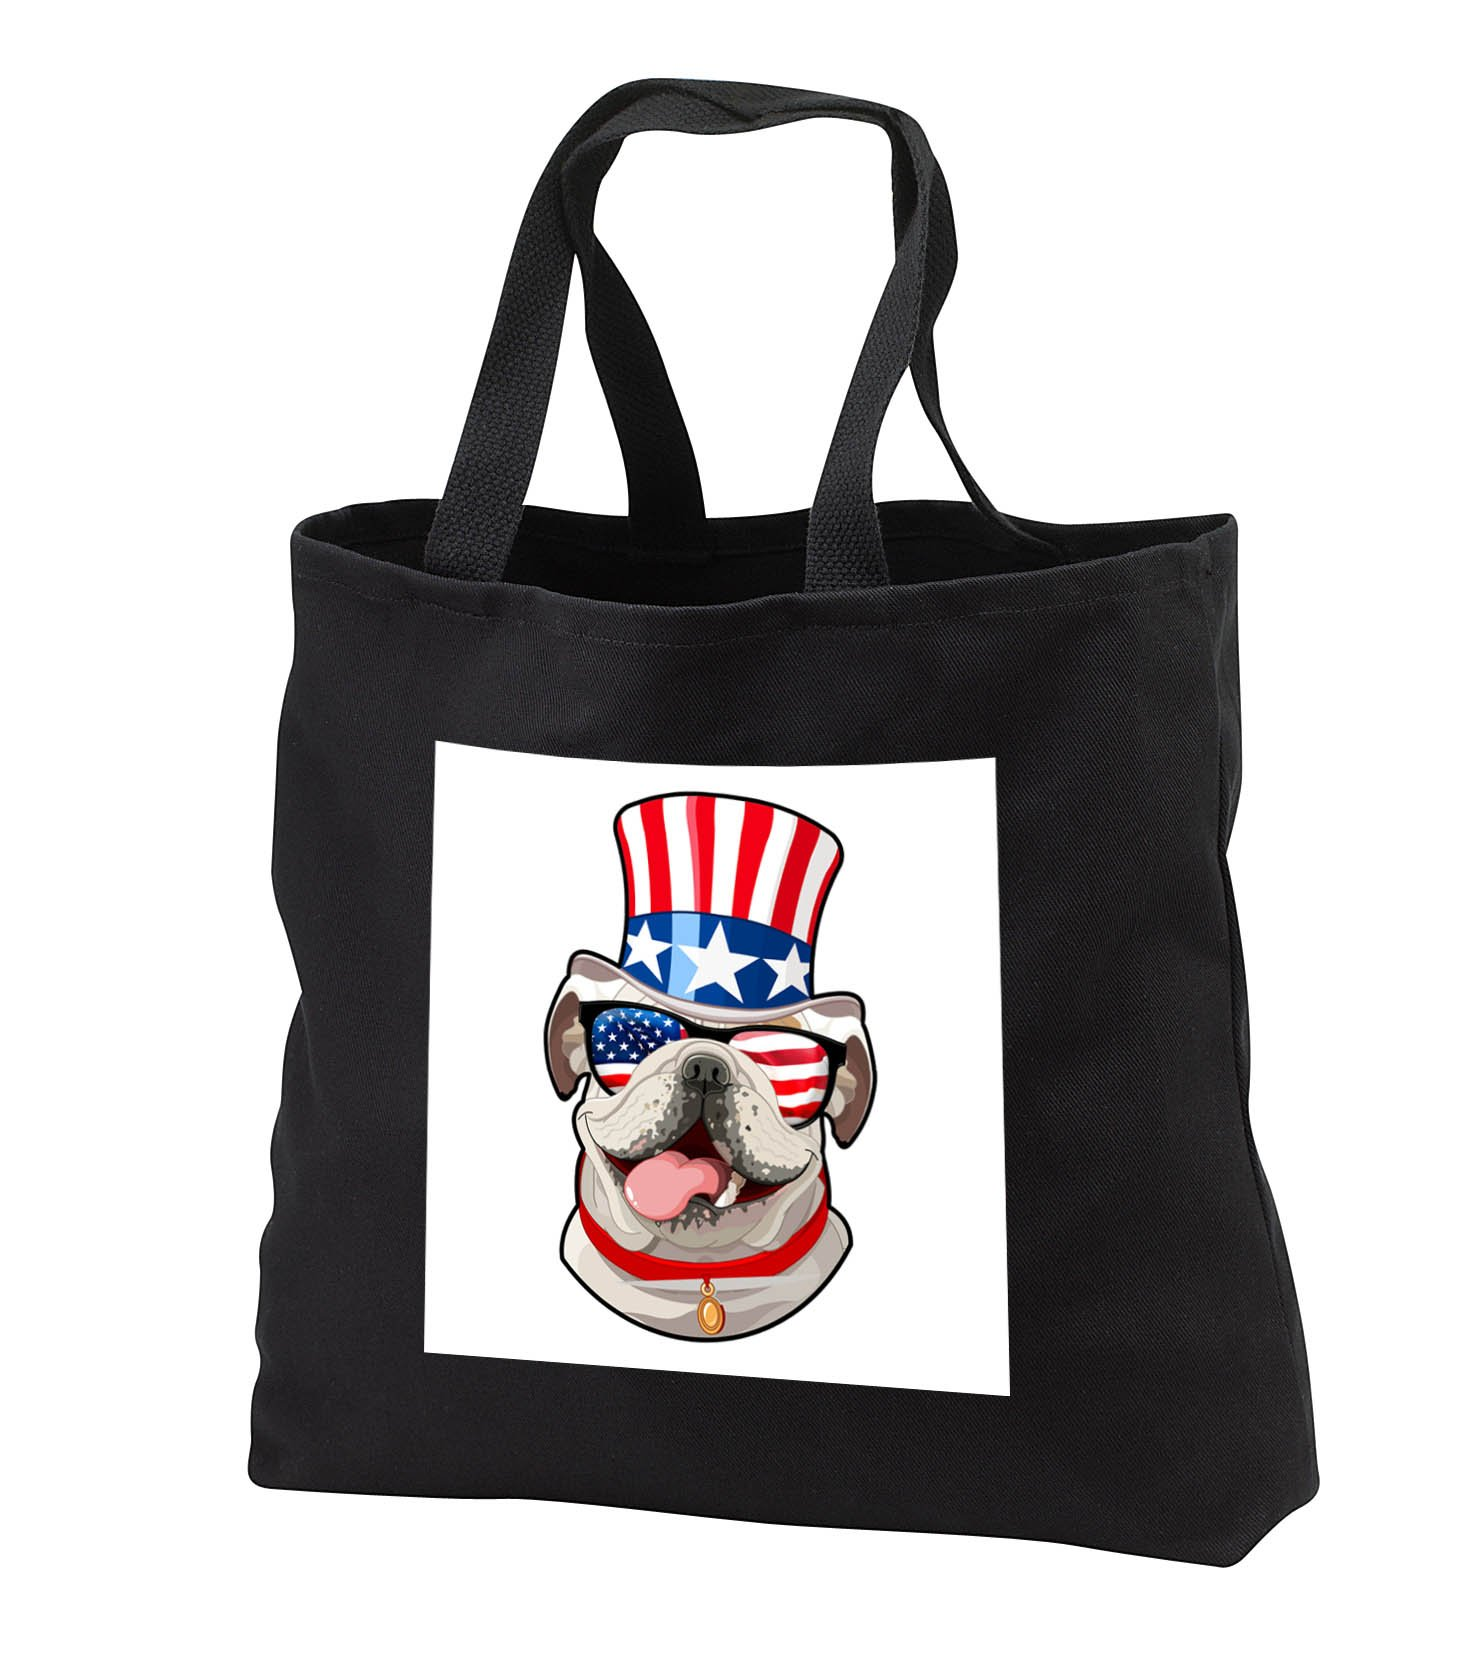 Patriotic American Dogs - English Bulldog Dog With American Flag Sunglasses and Top hat - Tote Bags - Black Tote Bag JUMBO 20w x 15h x 5d (tb_282713_3)